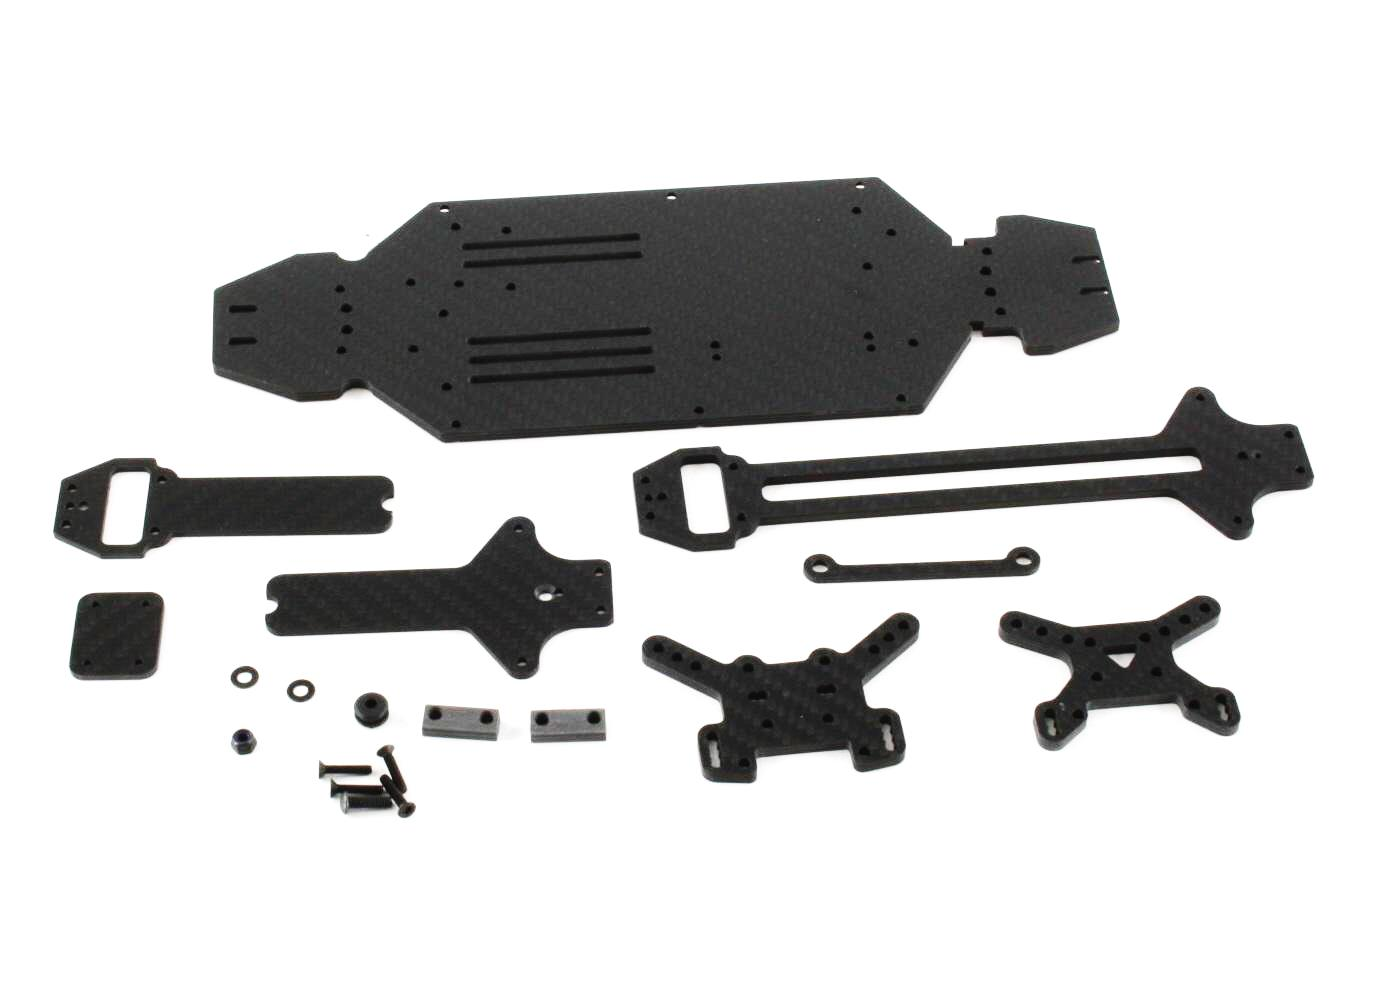 OneHobby-Tuning-Carbon-KIT-3mm-LC-Racing-Buggy-Monster-Truck